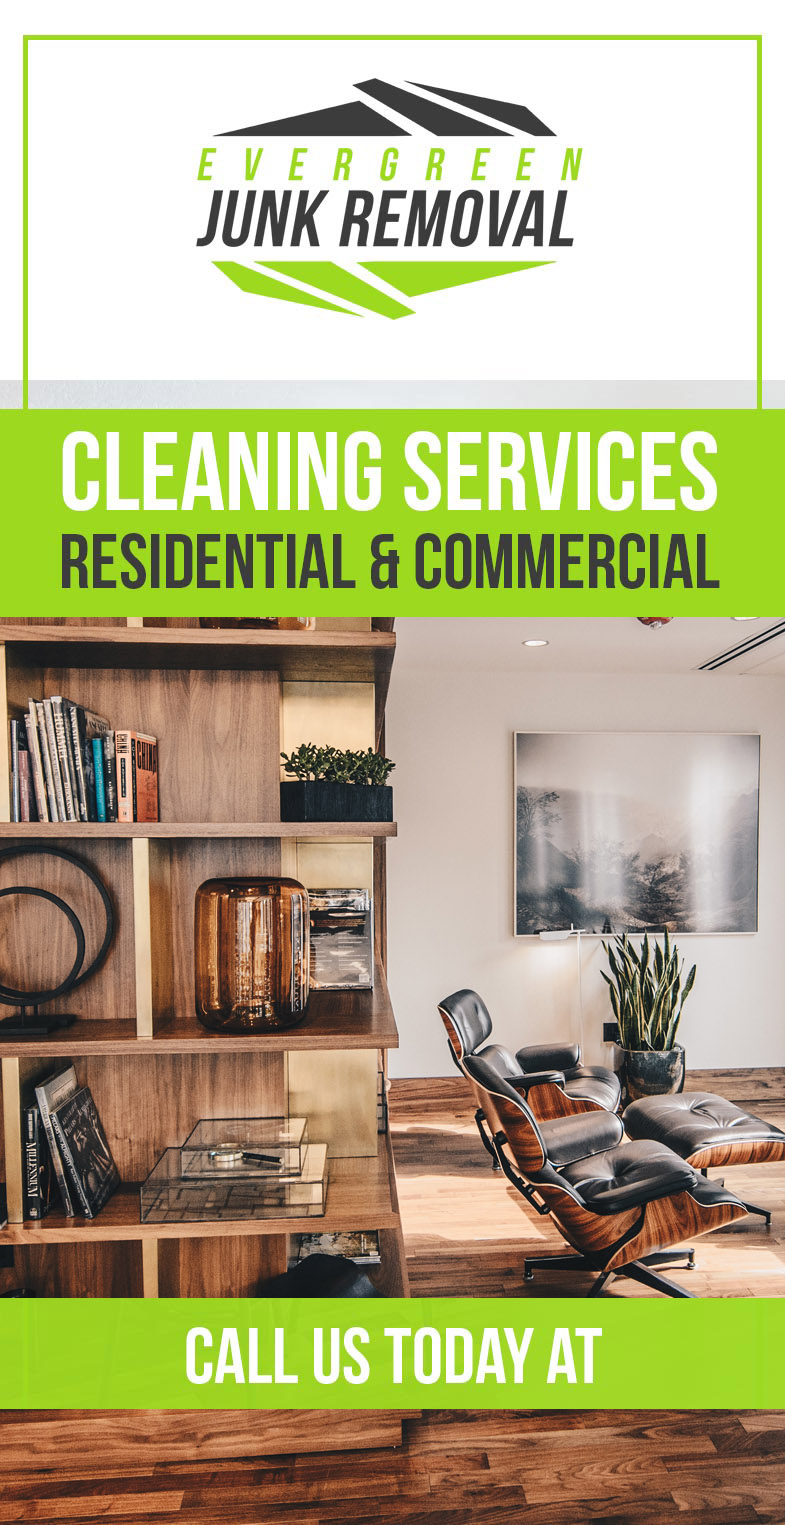 Riviera Beach Commercial Cleaning